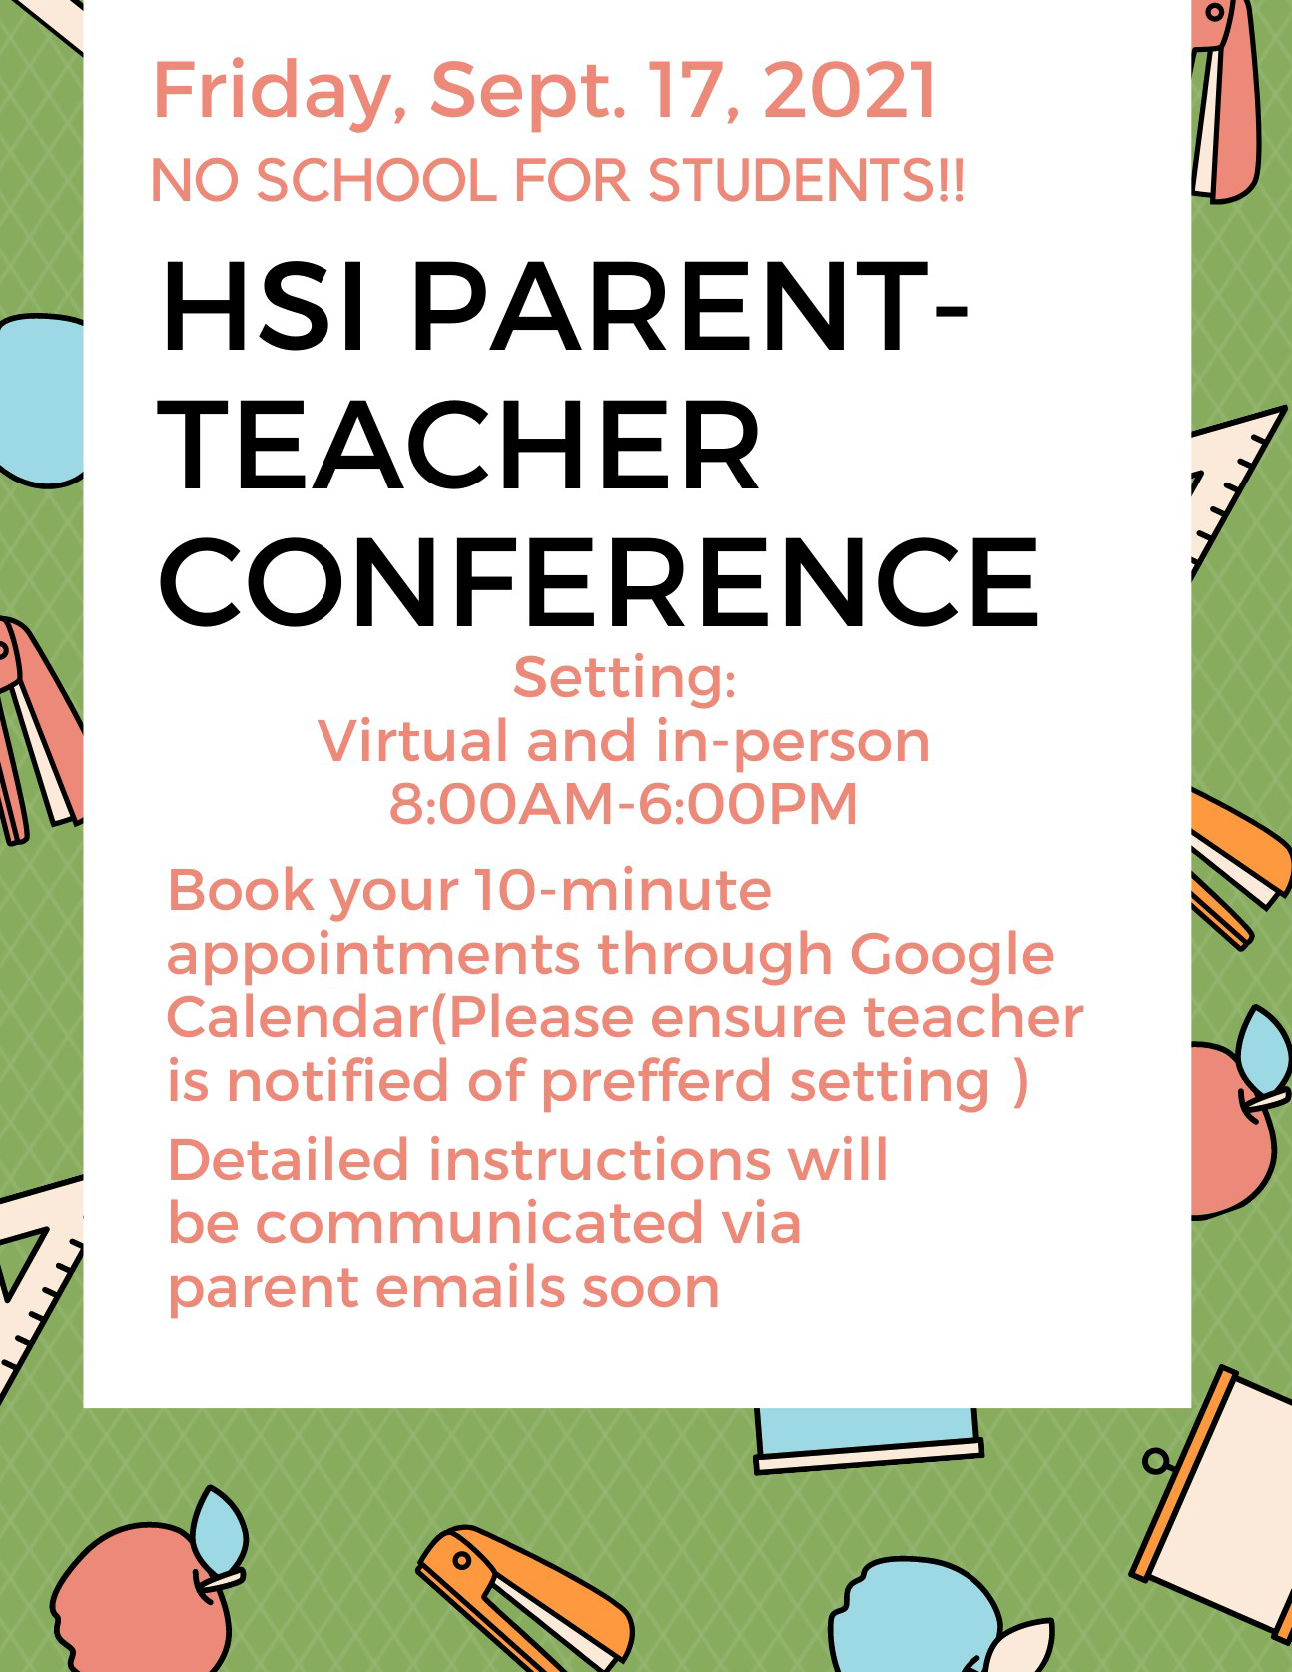 An image of the Sept 17, 2021 Parent Teacher Conference flyer